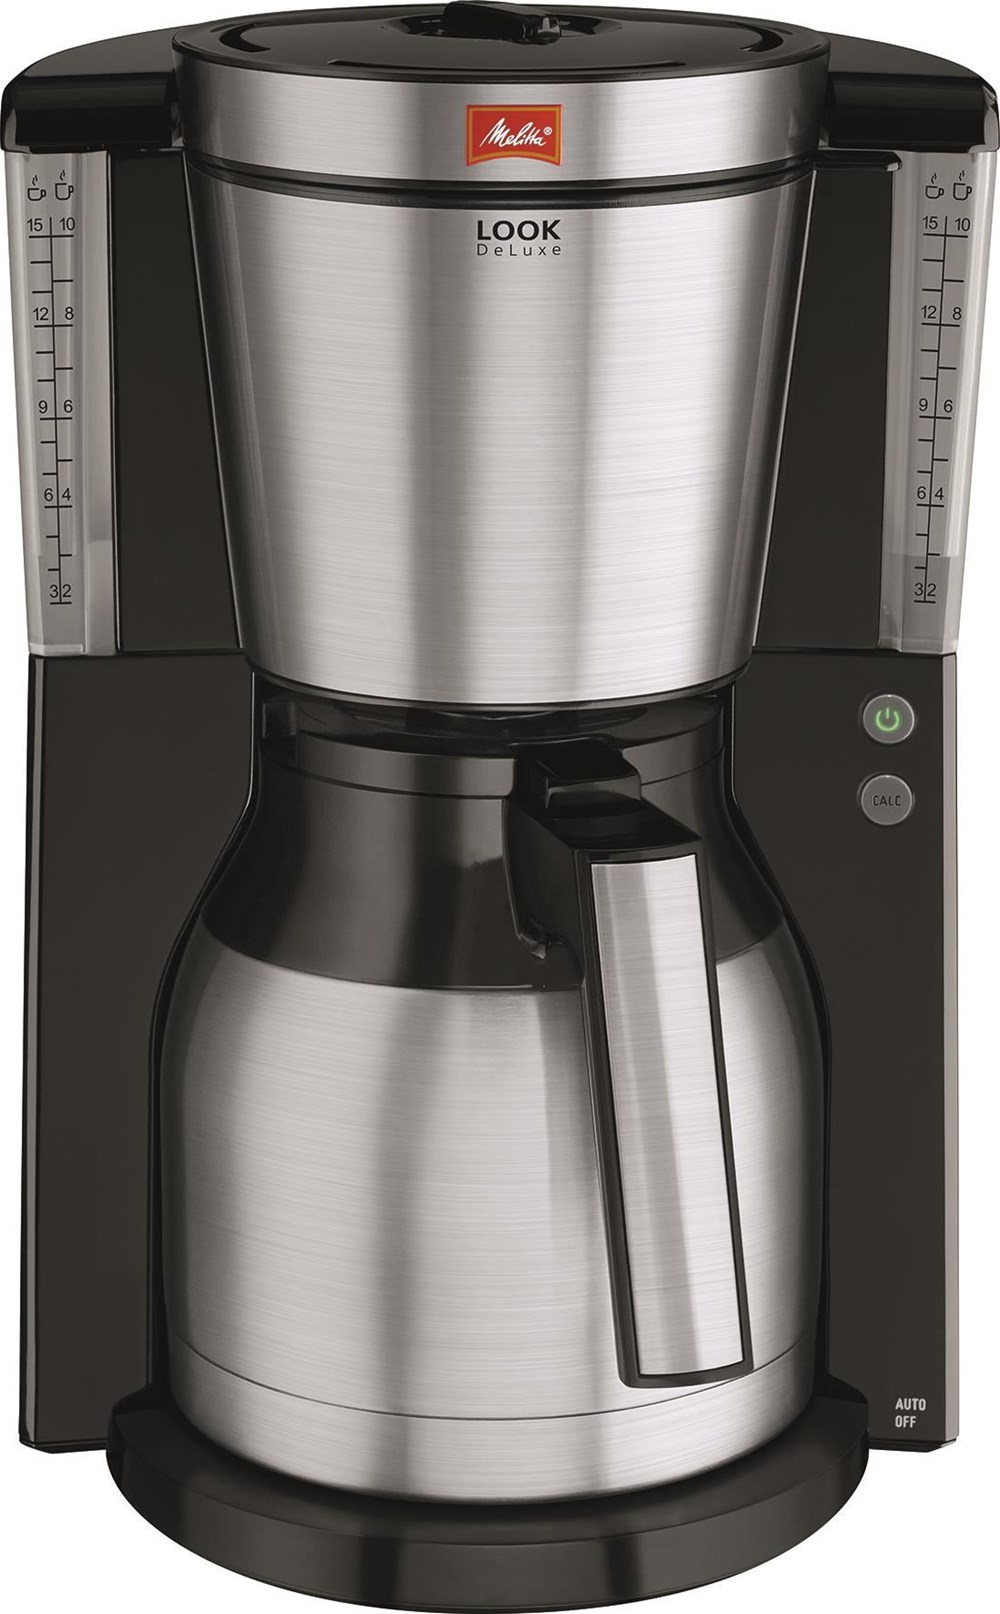 Melitta Look IV Therm de luxe 1011-14